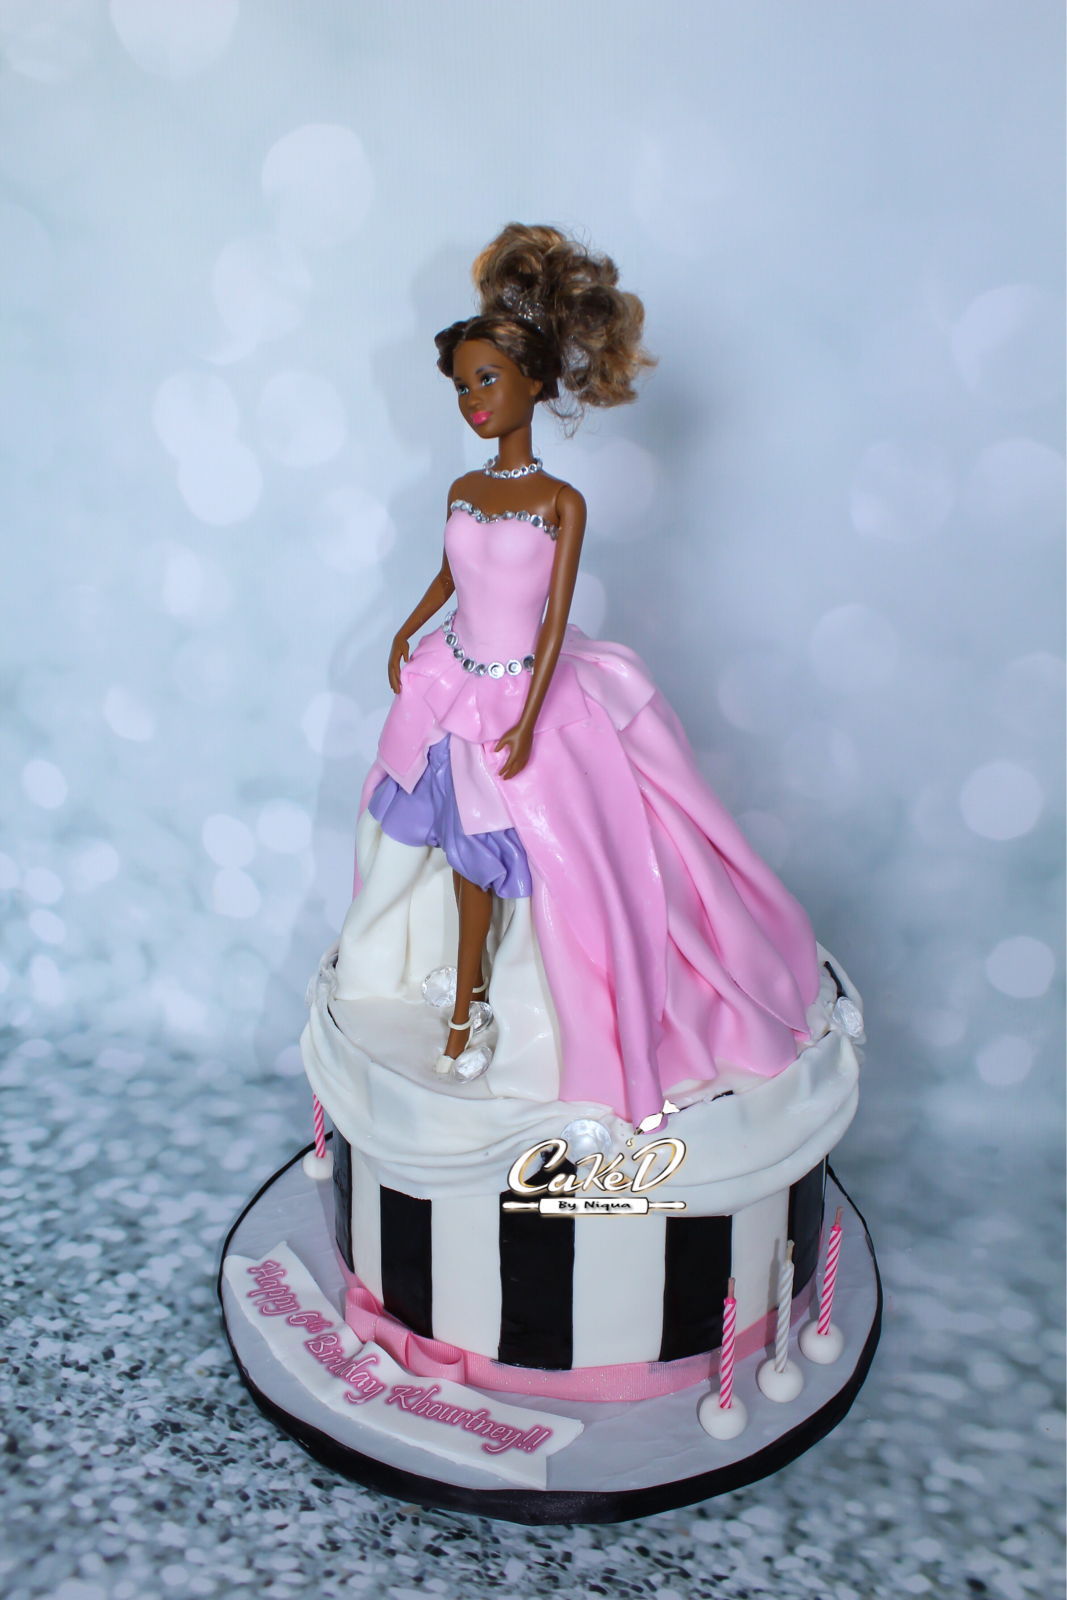 Barbie Fashion Cake